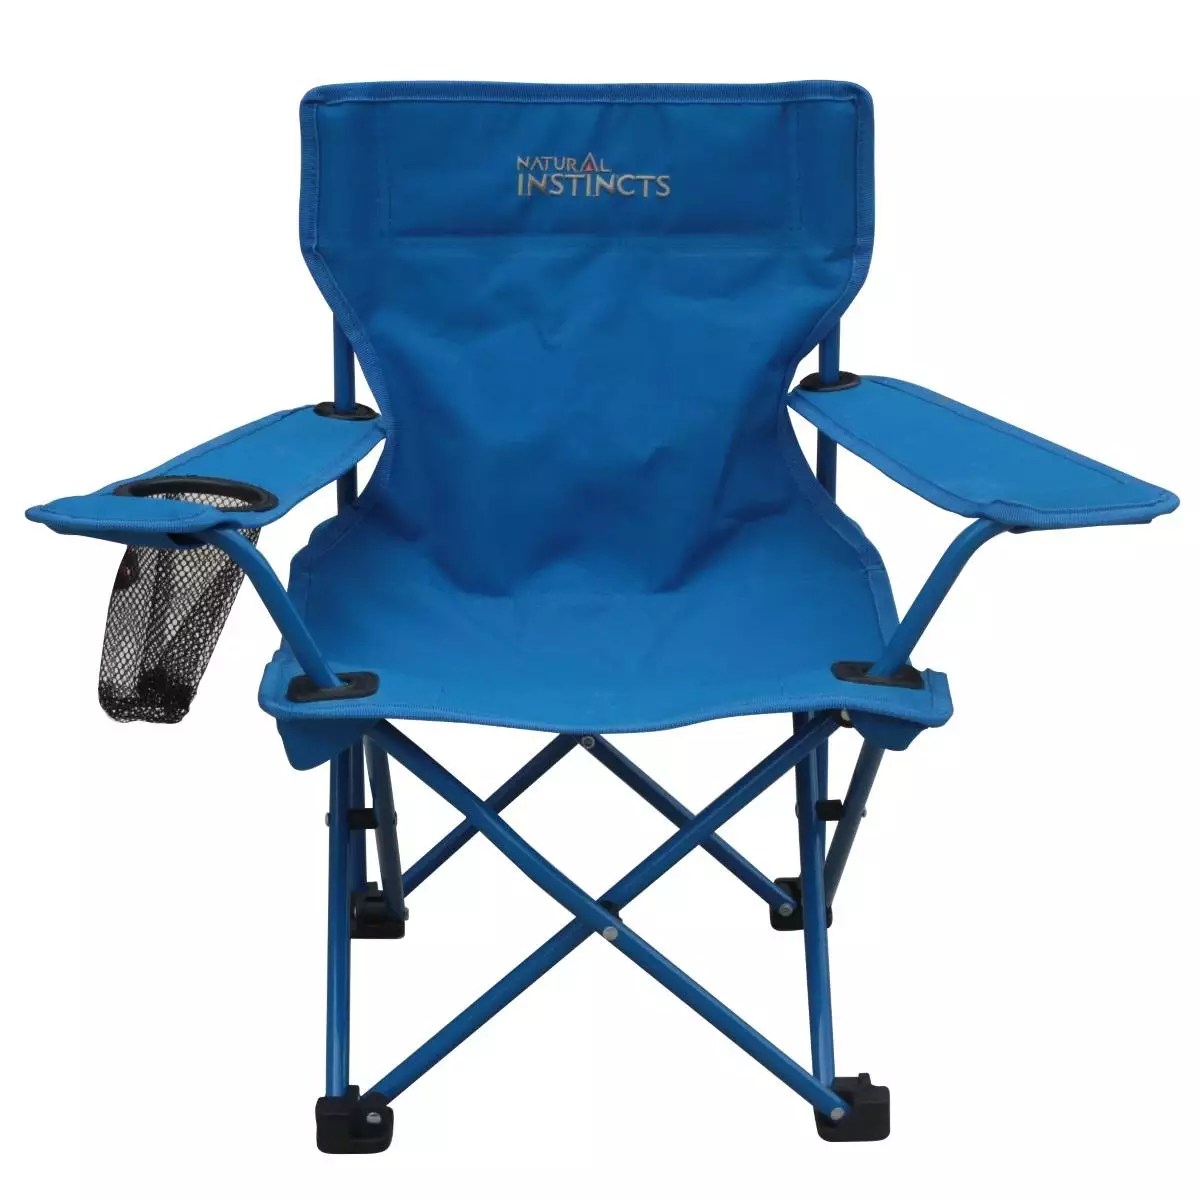 fishing chair no arms cane back chairs for sale natural instincts kiddies